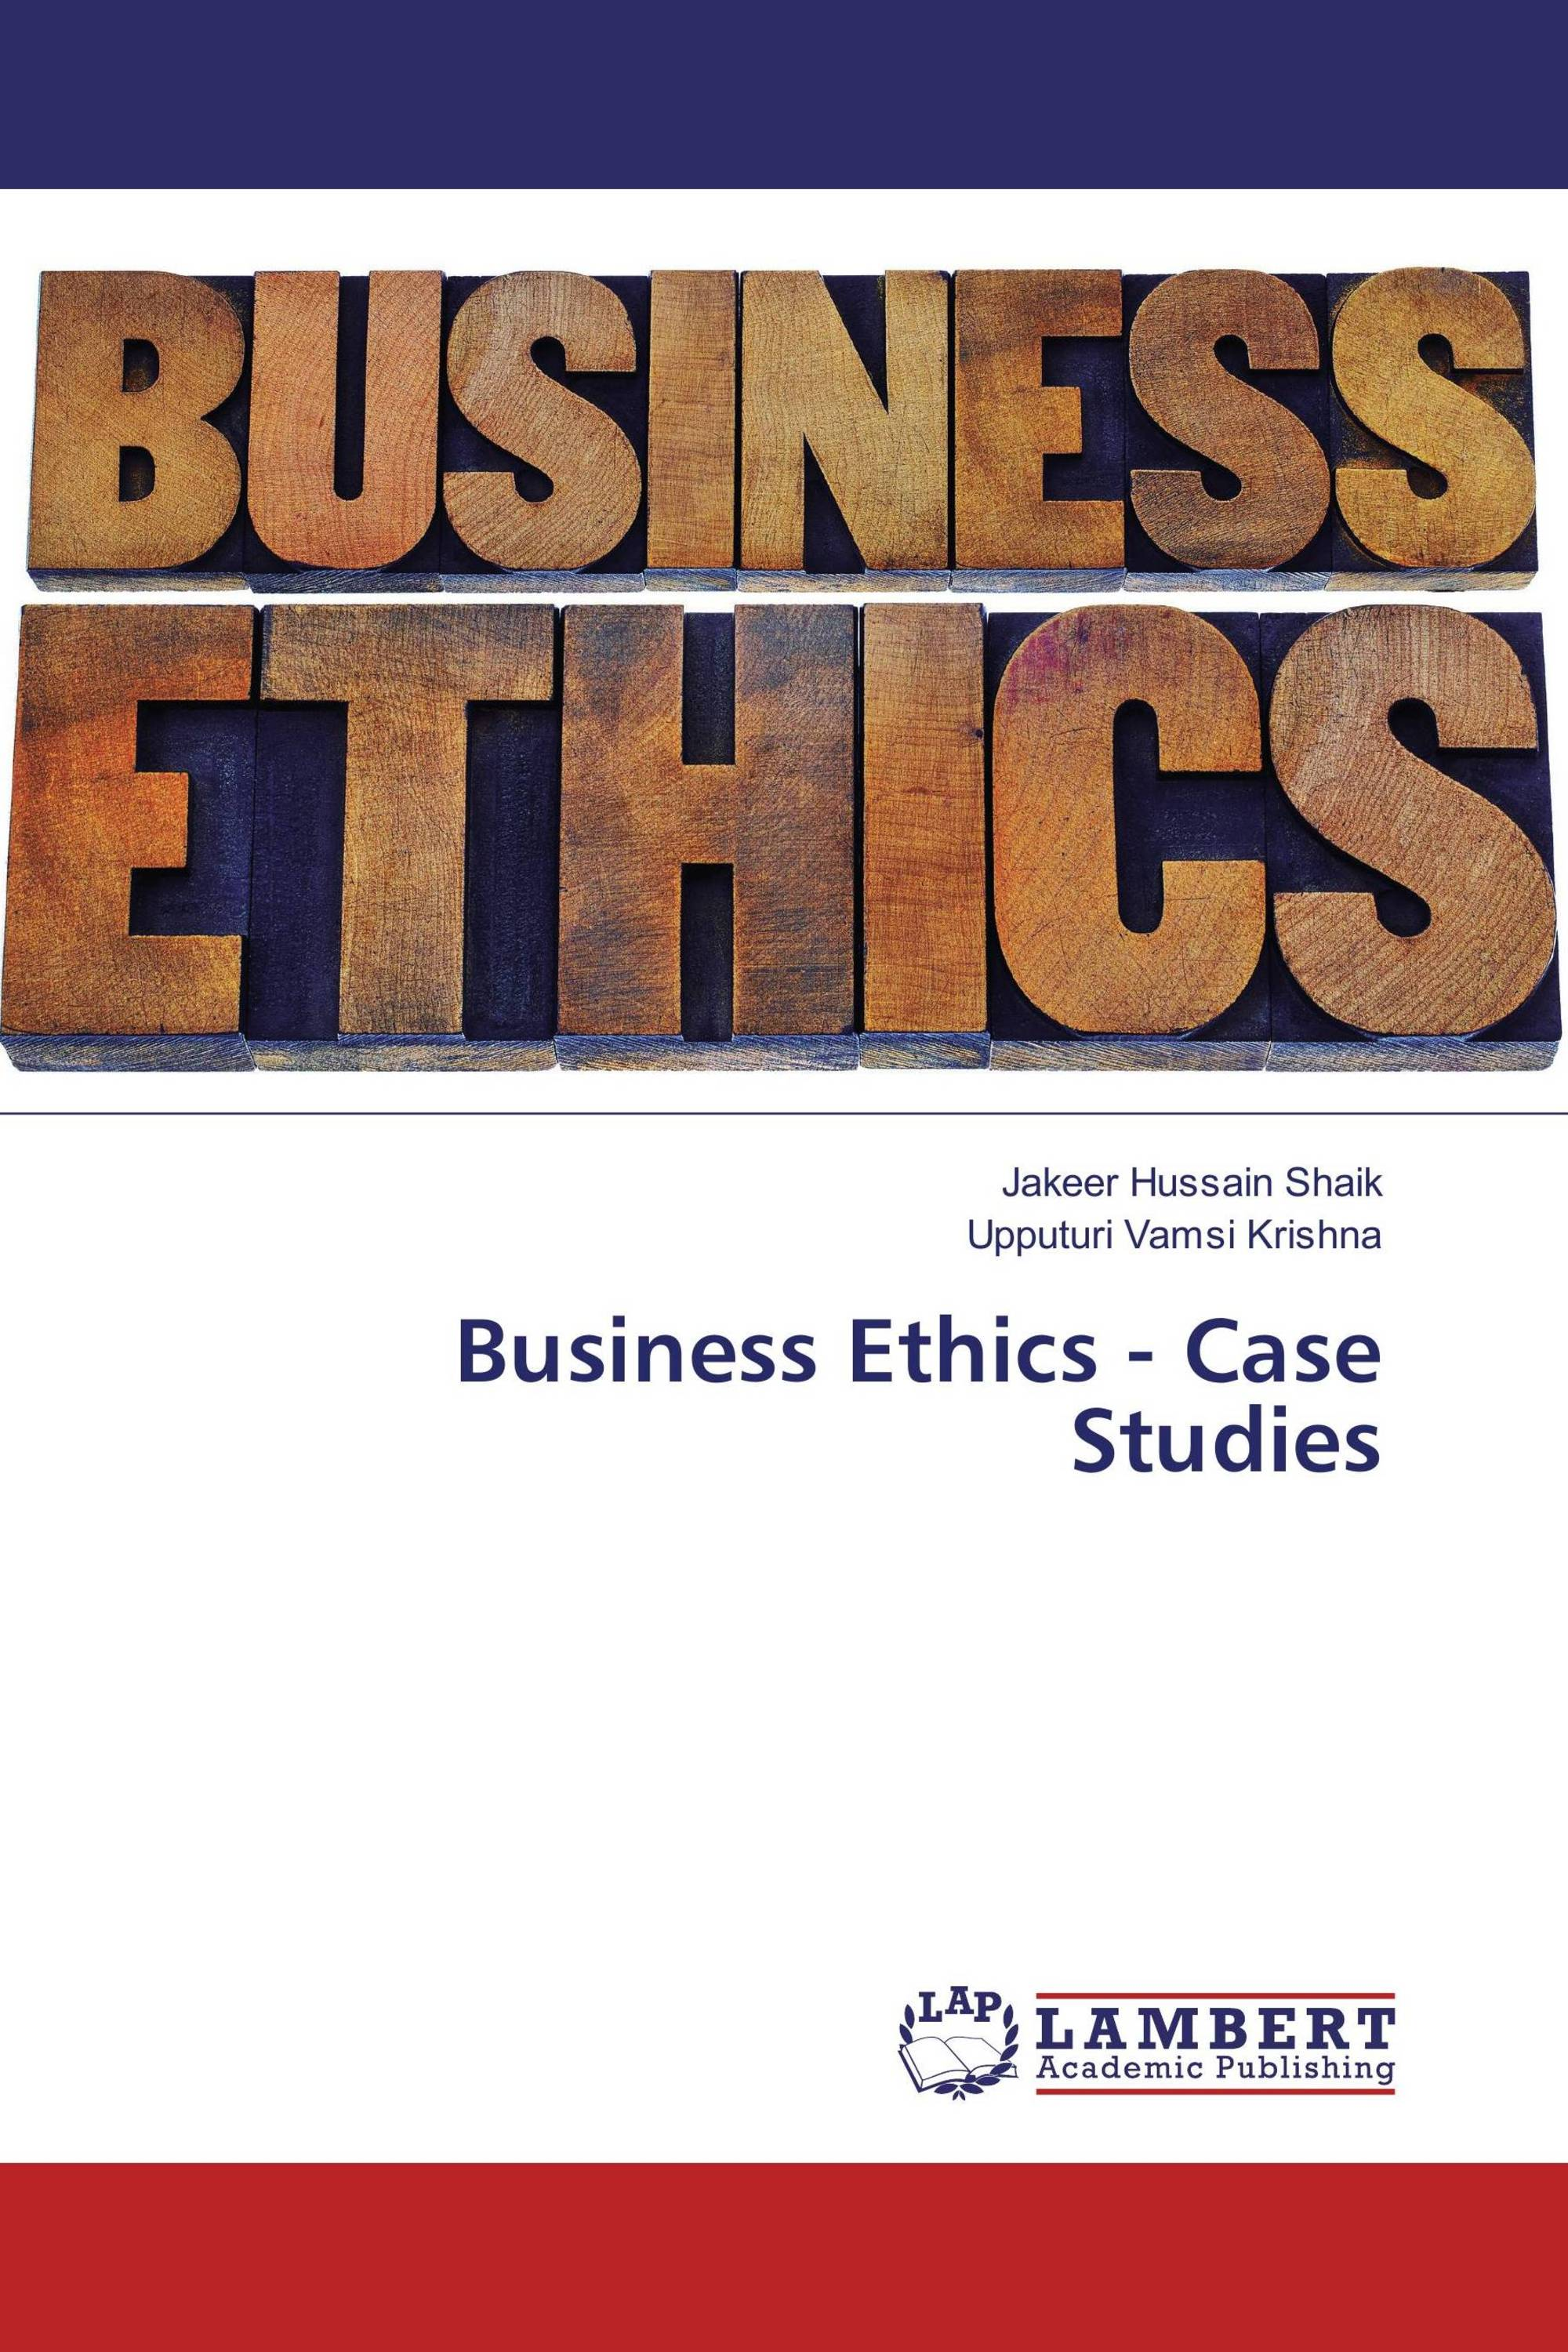 business ethics case studies and answers Business case study ethics we can write case studies in business society and ethics in a particularly ethically way we don't copy text word for word when filling out a case study on business ethics.